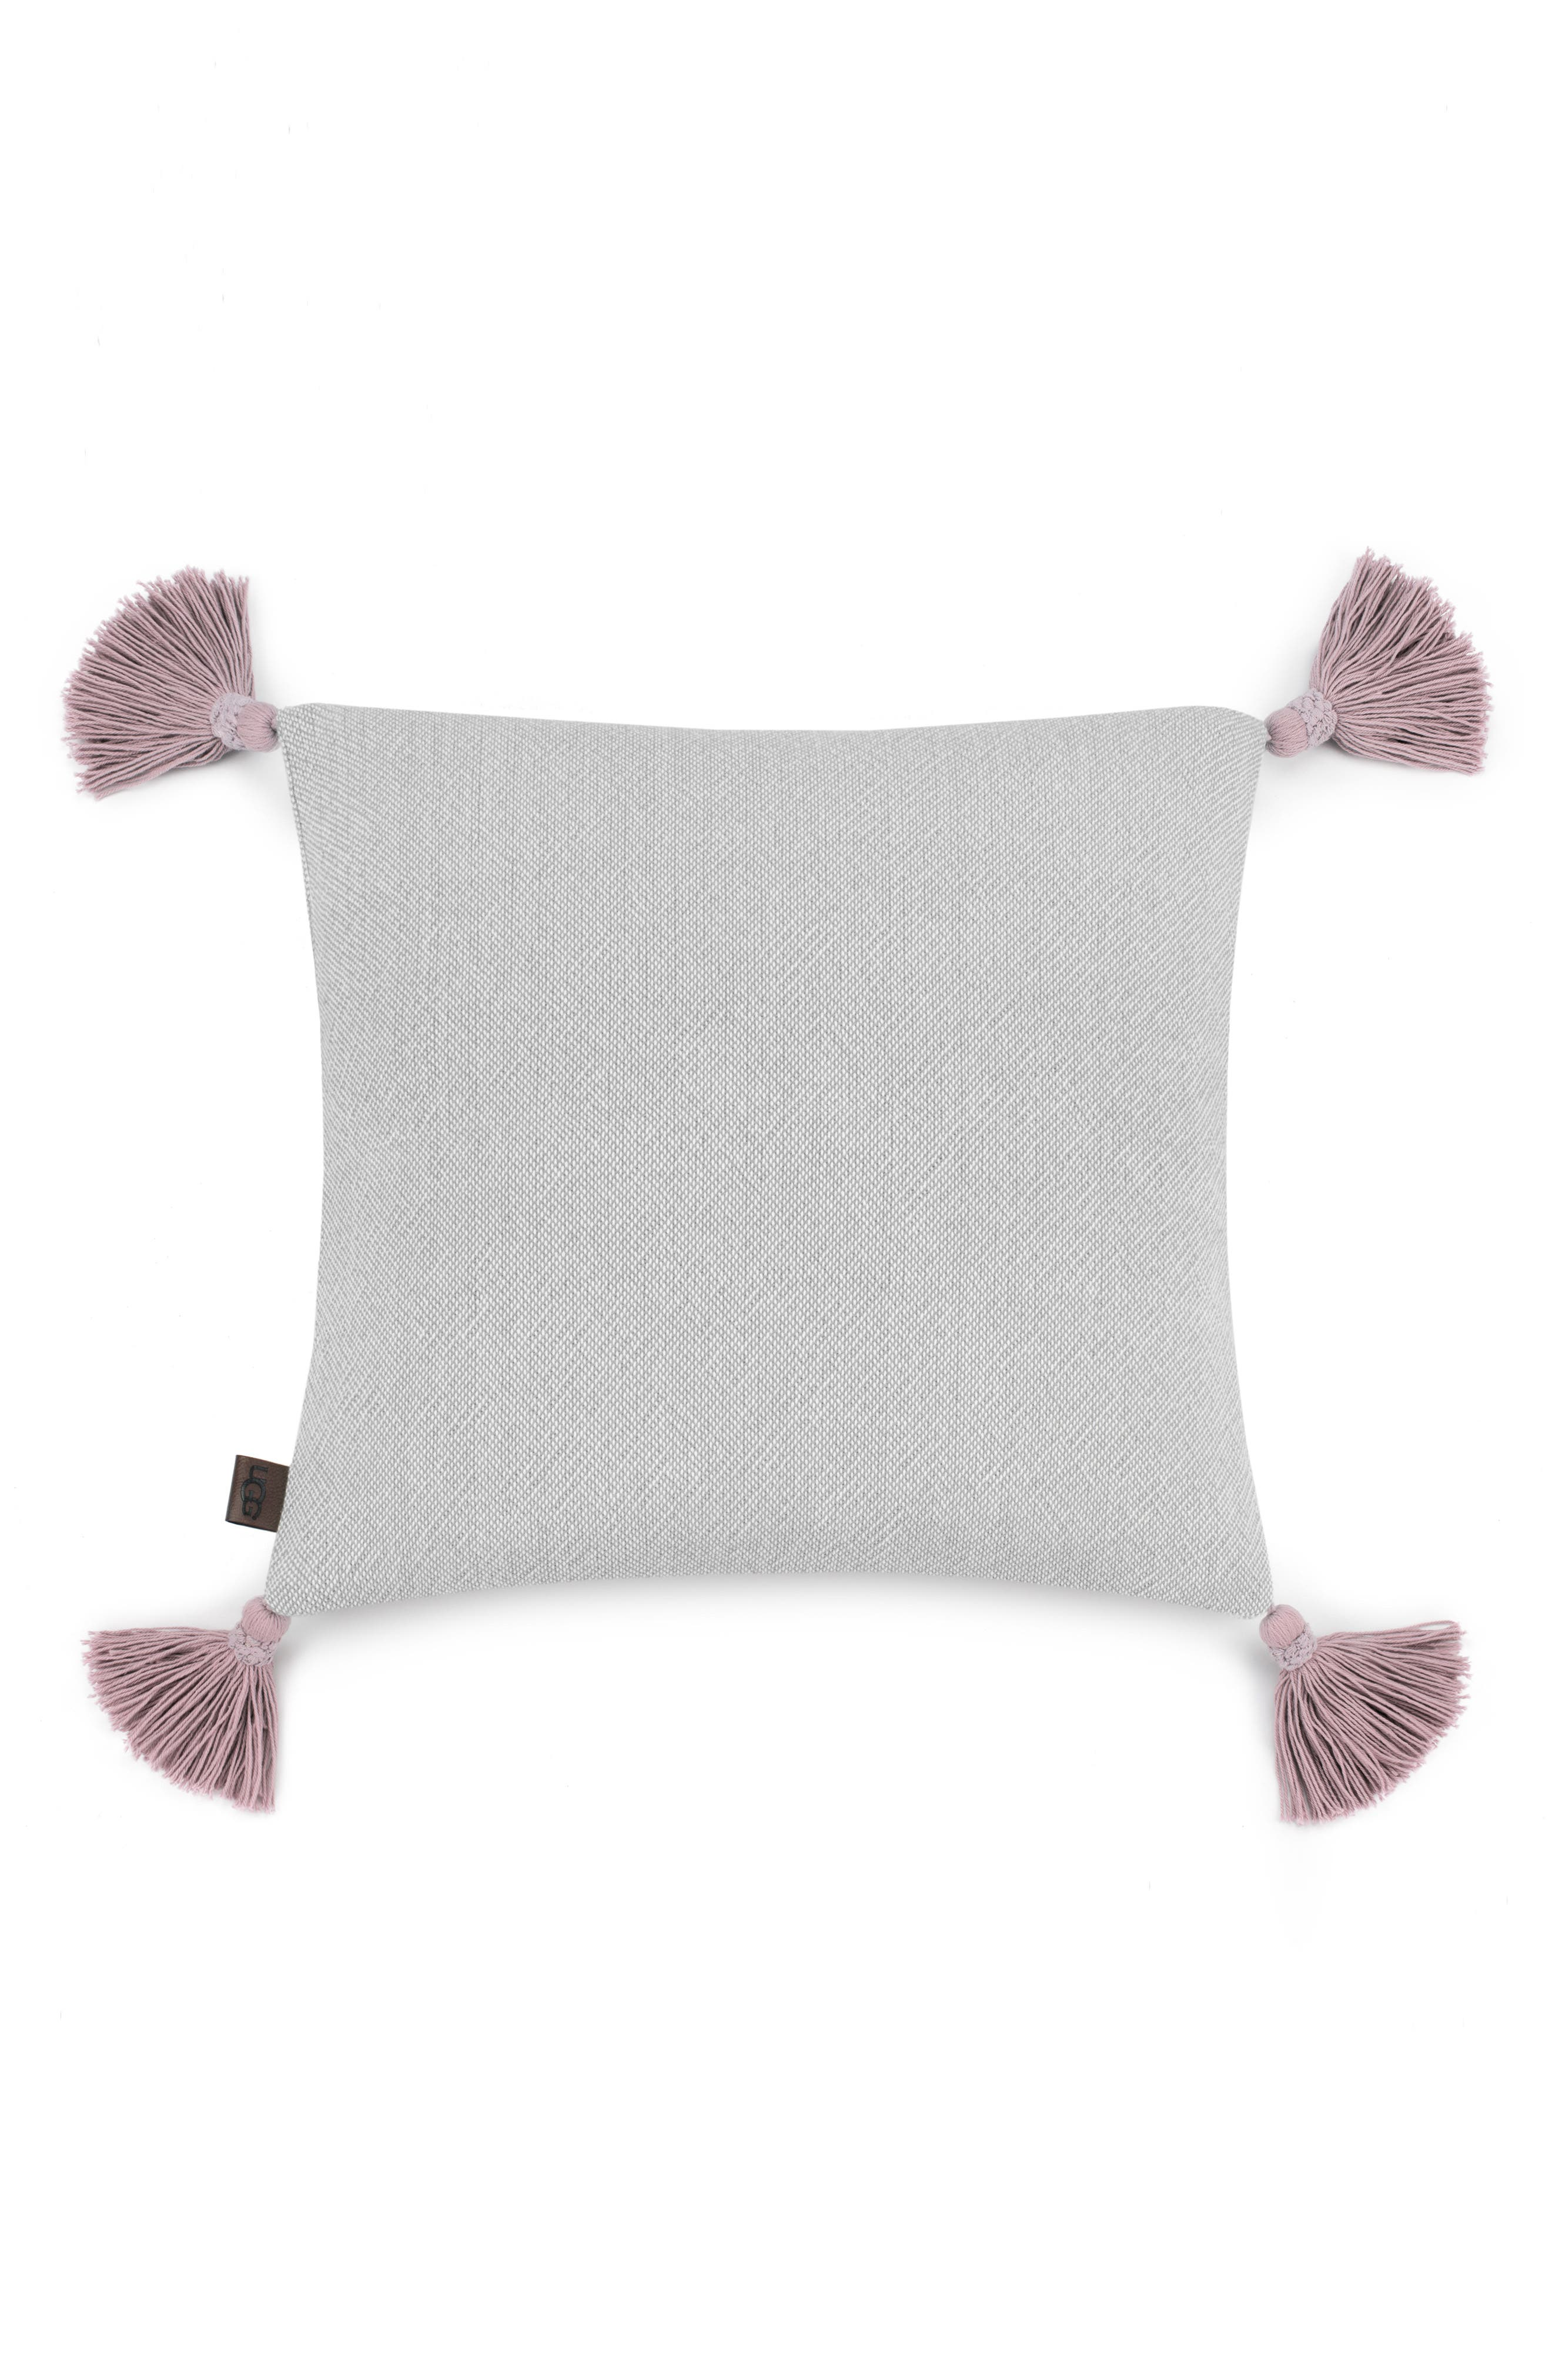 Skylar Accent Pillow,                             Main thumbnail 1, color,                             020